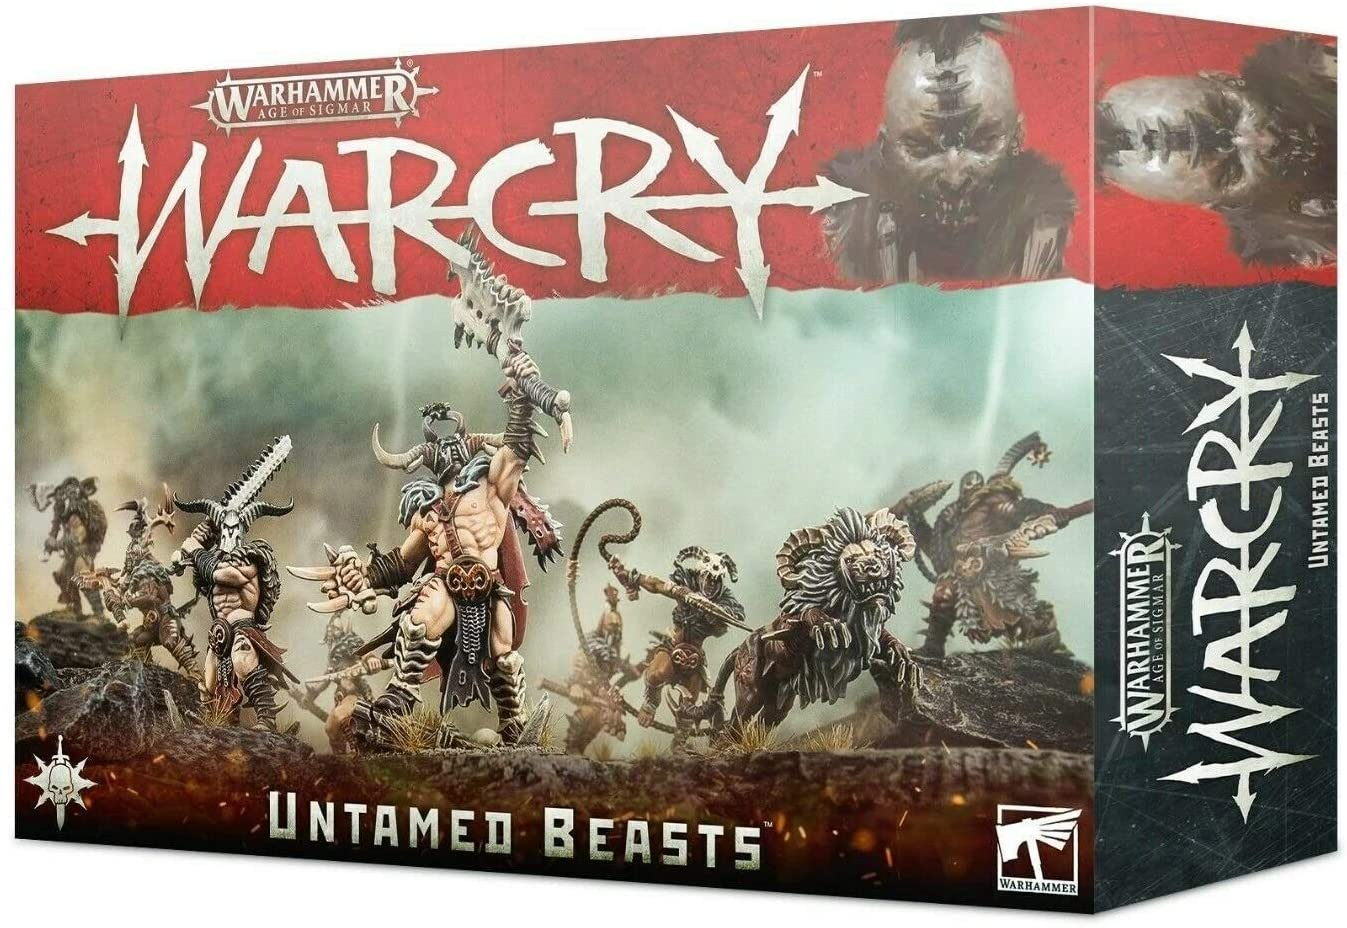 Pret mic Warcry: Untamed Beasts